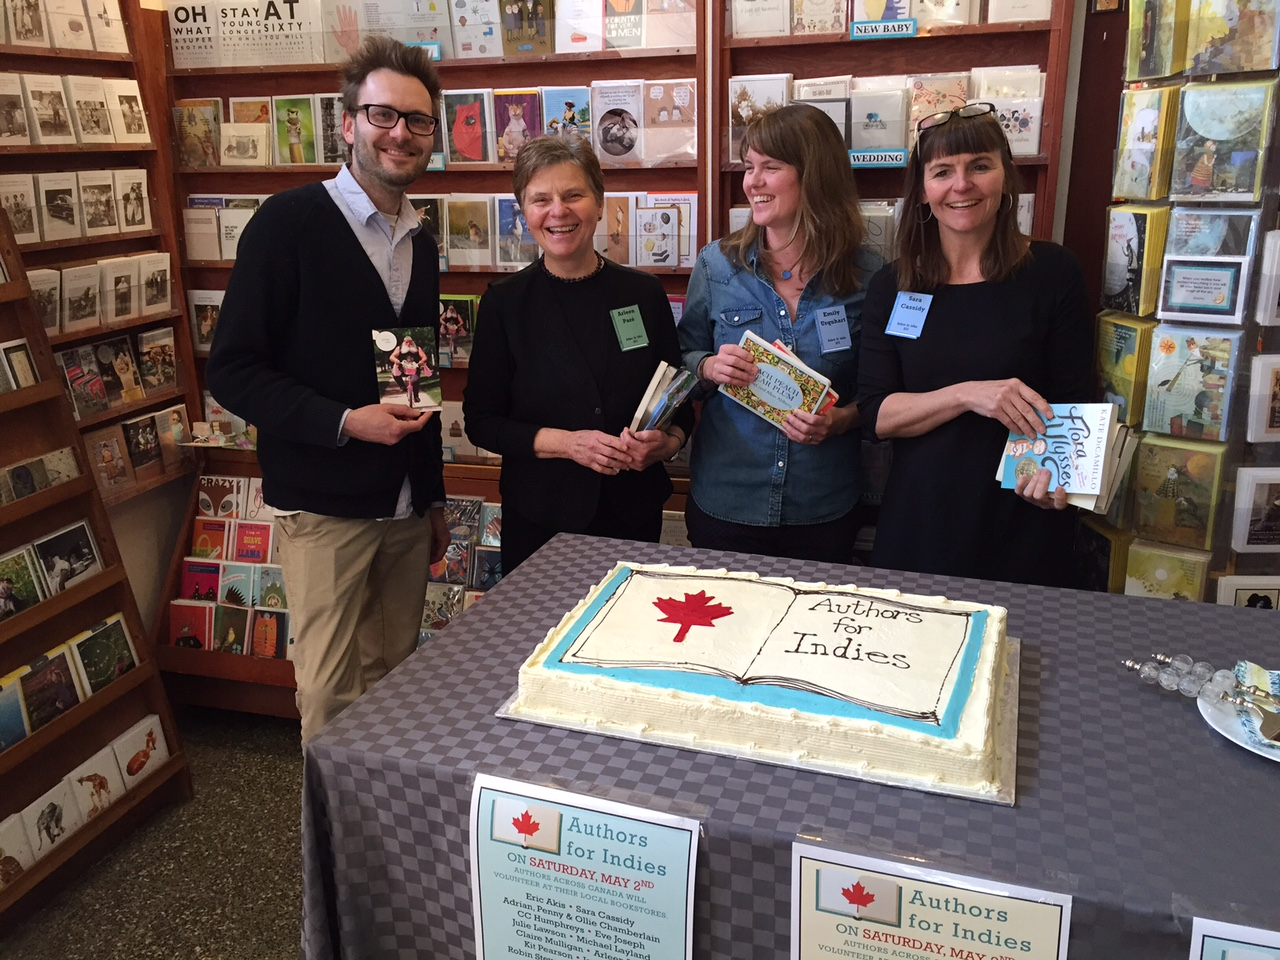 Authors Lee Henderson, Arleen Paré, Emily Urquhart, and Sara Cassidy at Munro's Books on last Authors for Indies Day